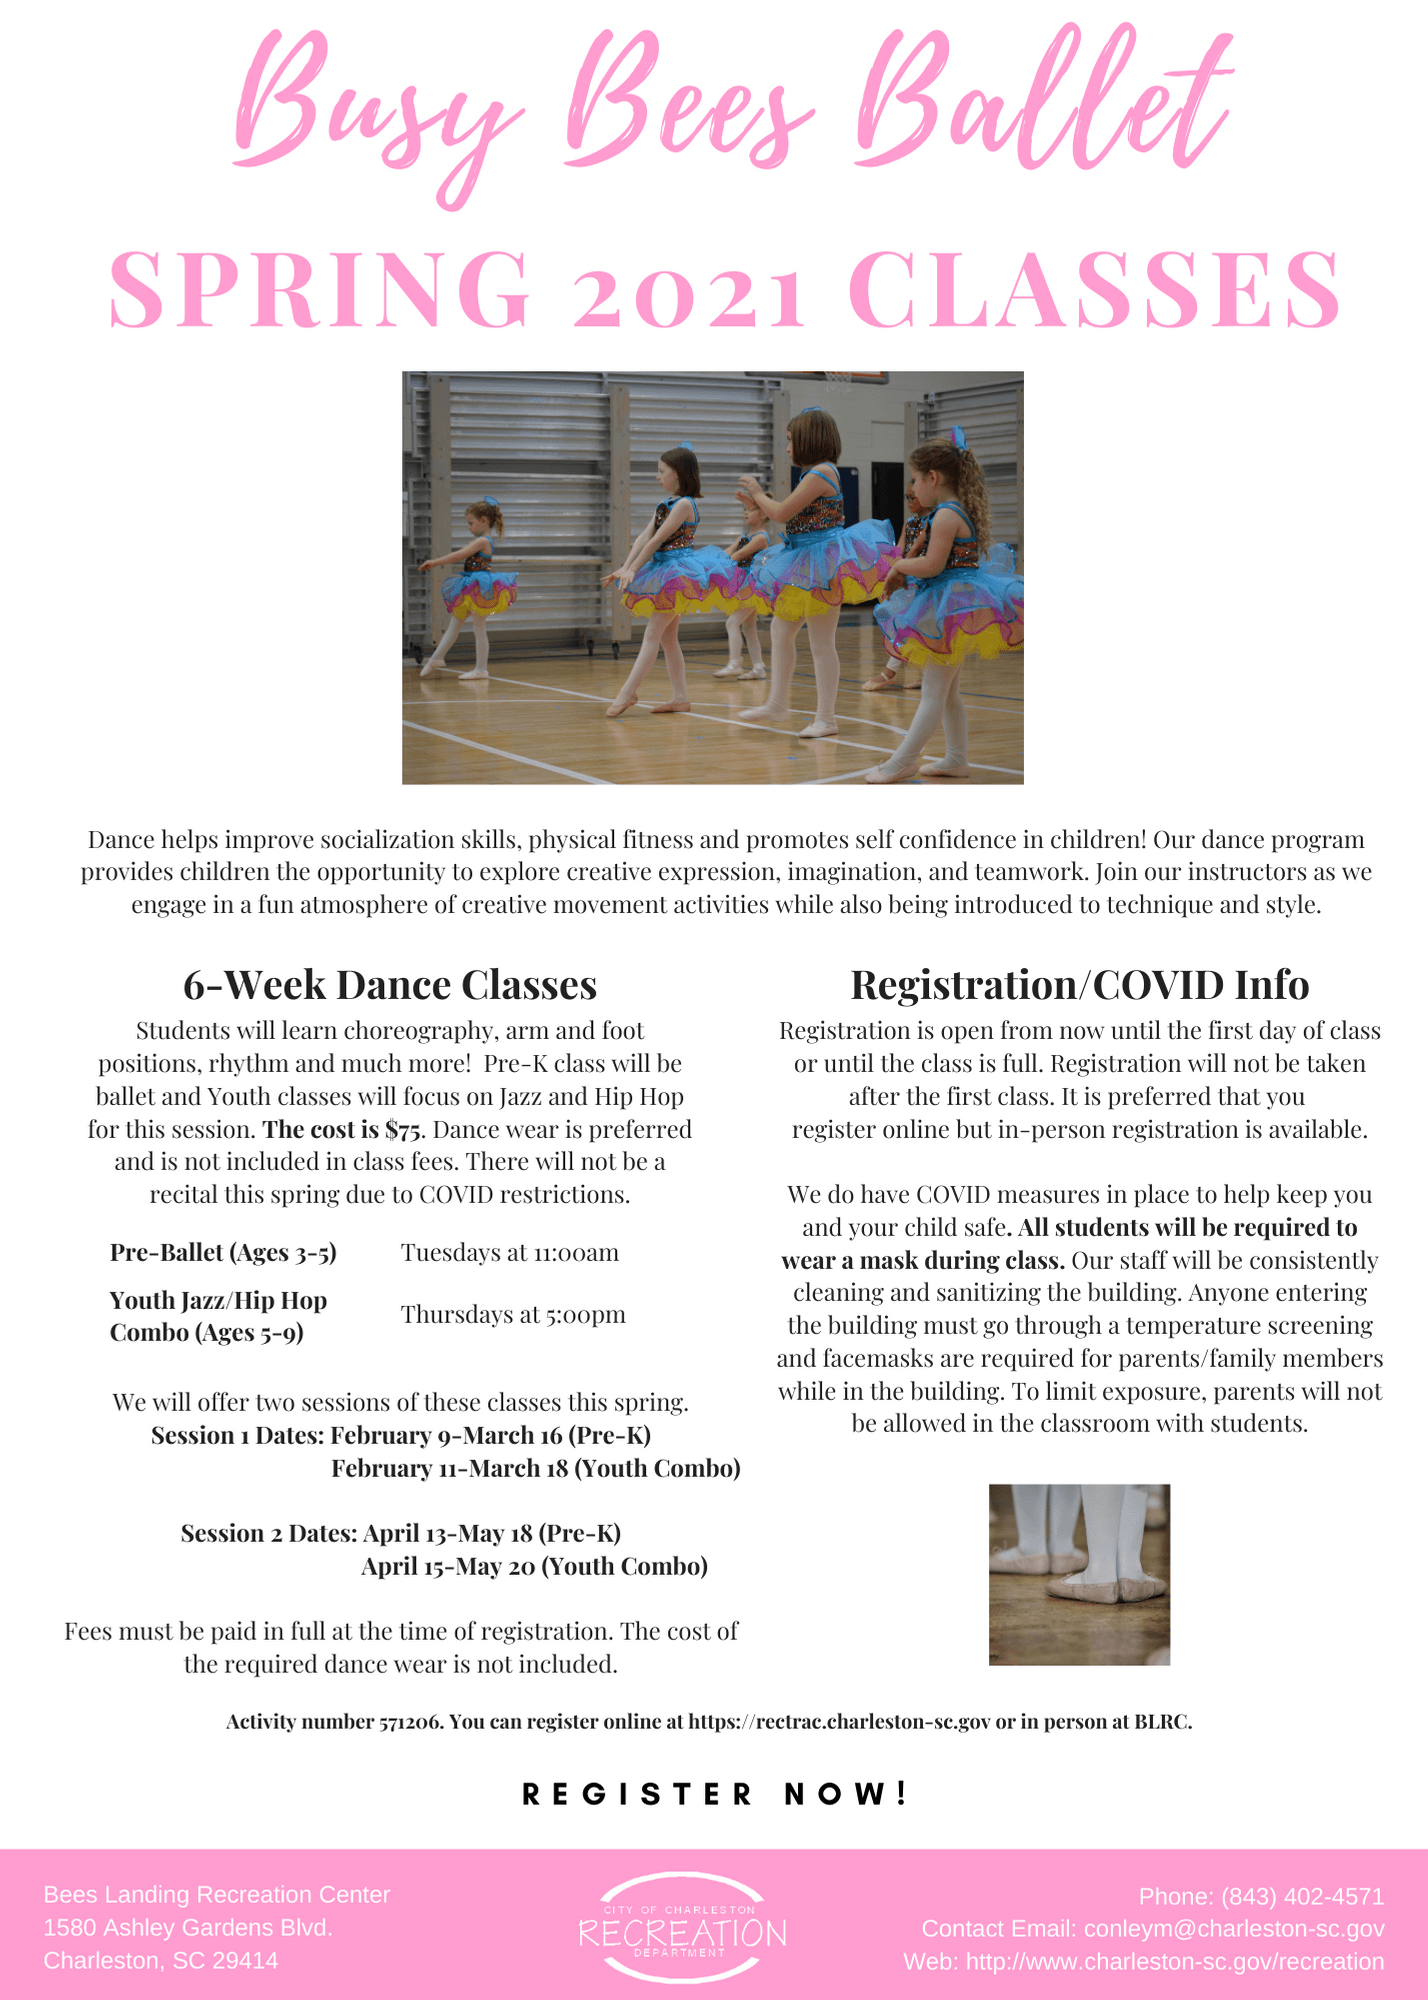 Busy Bees Ballet Spring 2021 Classes Opens in new window